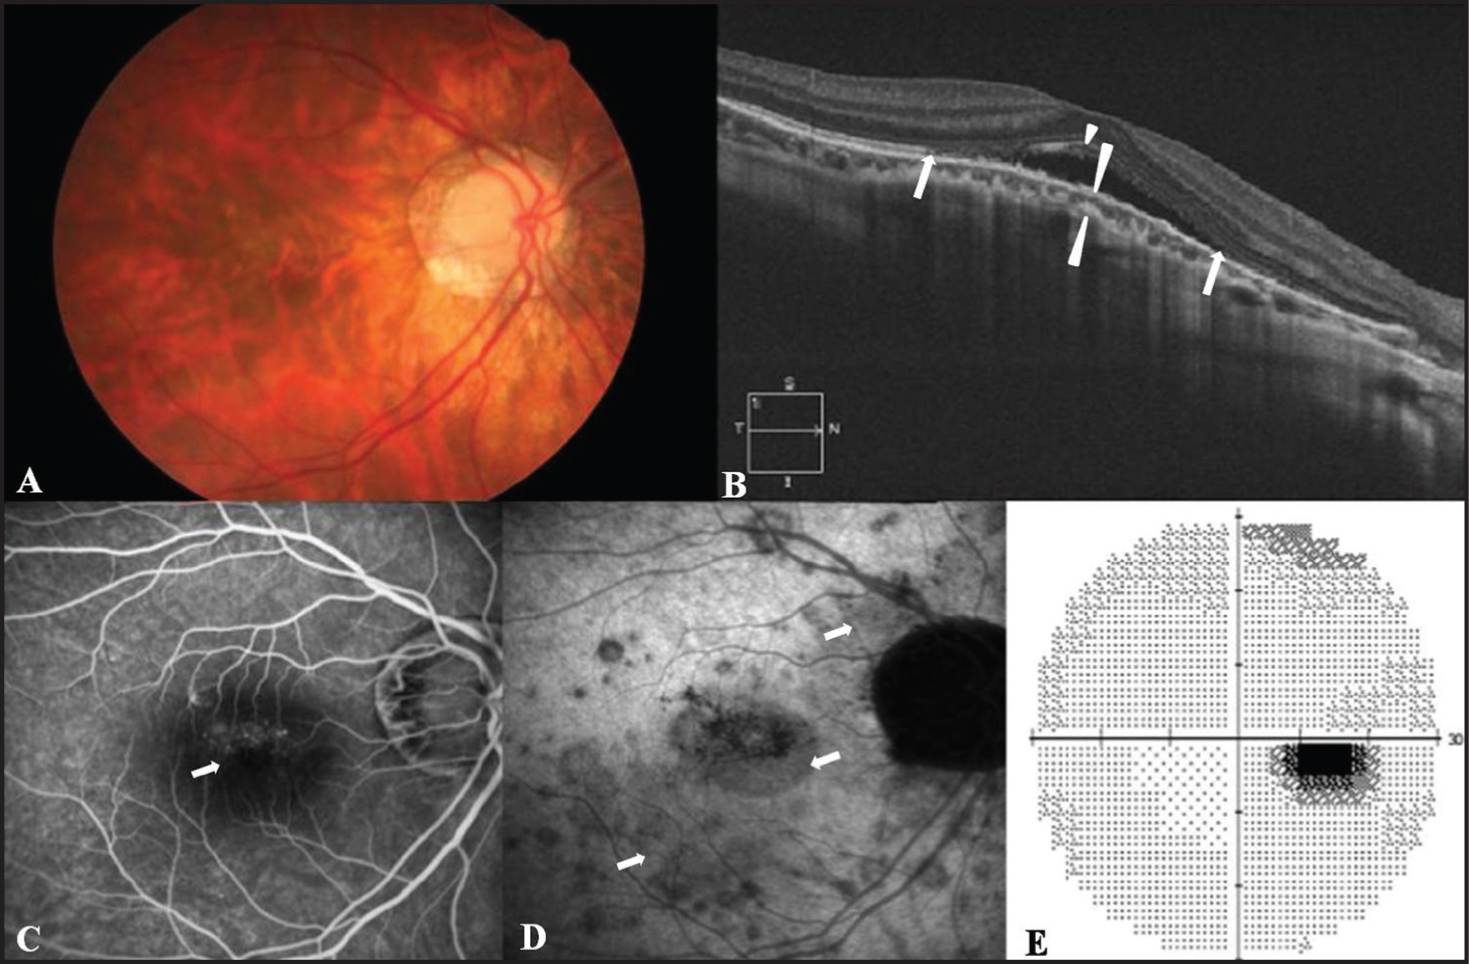 (A) Fundus photograph at presentation showing multiple white dots around the macula and a myopic crescent. (B) OCT scan revealing shallow serous retinal detachment (arrowhead) at the top of the macular bulge with loss of inner segment/outer segment line of photoreceptors (between the arrows) and a thin choroid (111 μm) at the upper border of the macular bulge (between long arrowheads). (C) Fluorescein angiography showing increased transmission at the fovea (arrow). (D) Late-phase indocyanine green angiography demonstrating multiple hypofluorescent spots (arrow) at the macula and around the optic disc. (E) An enlarged blind spot detected in the automated visual field test.